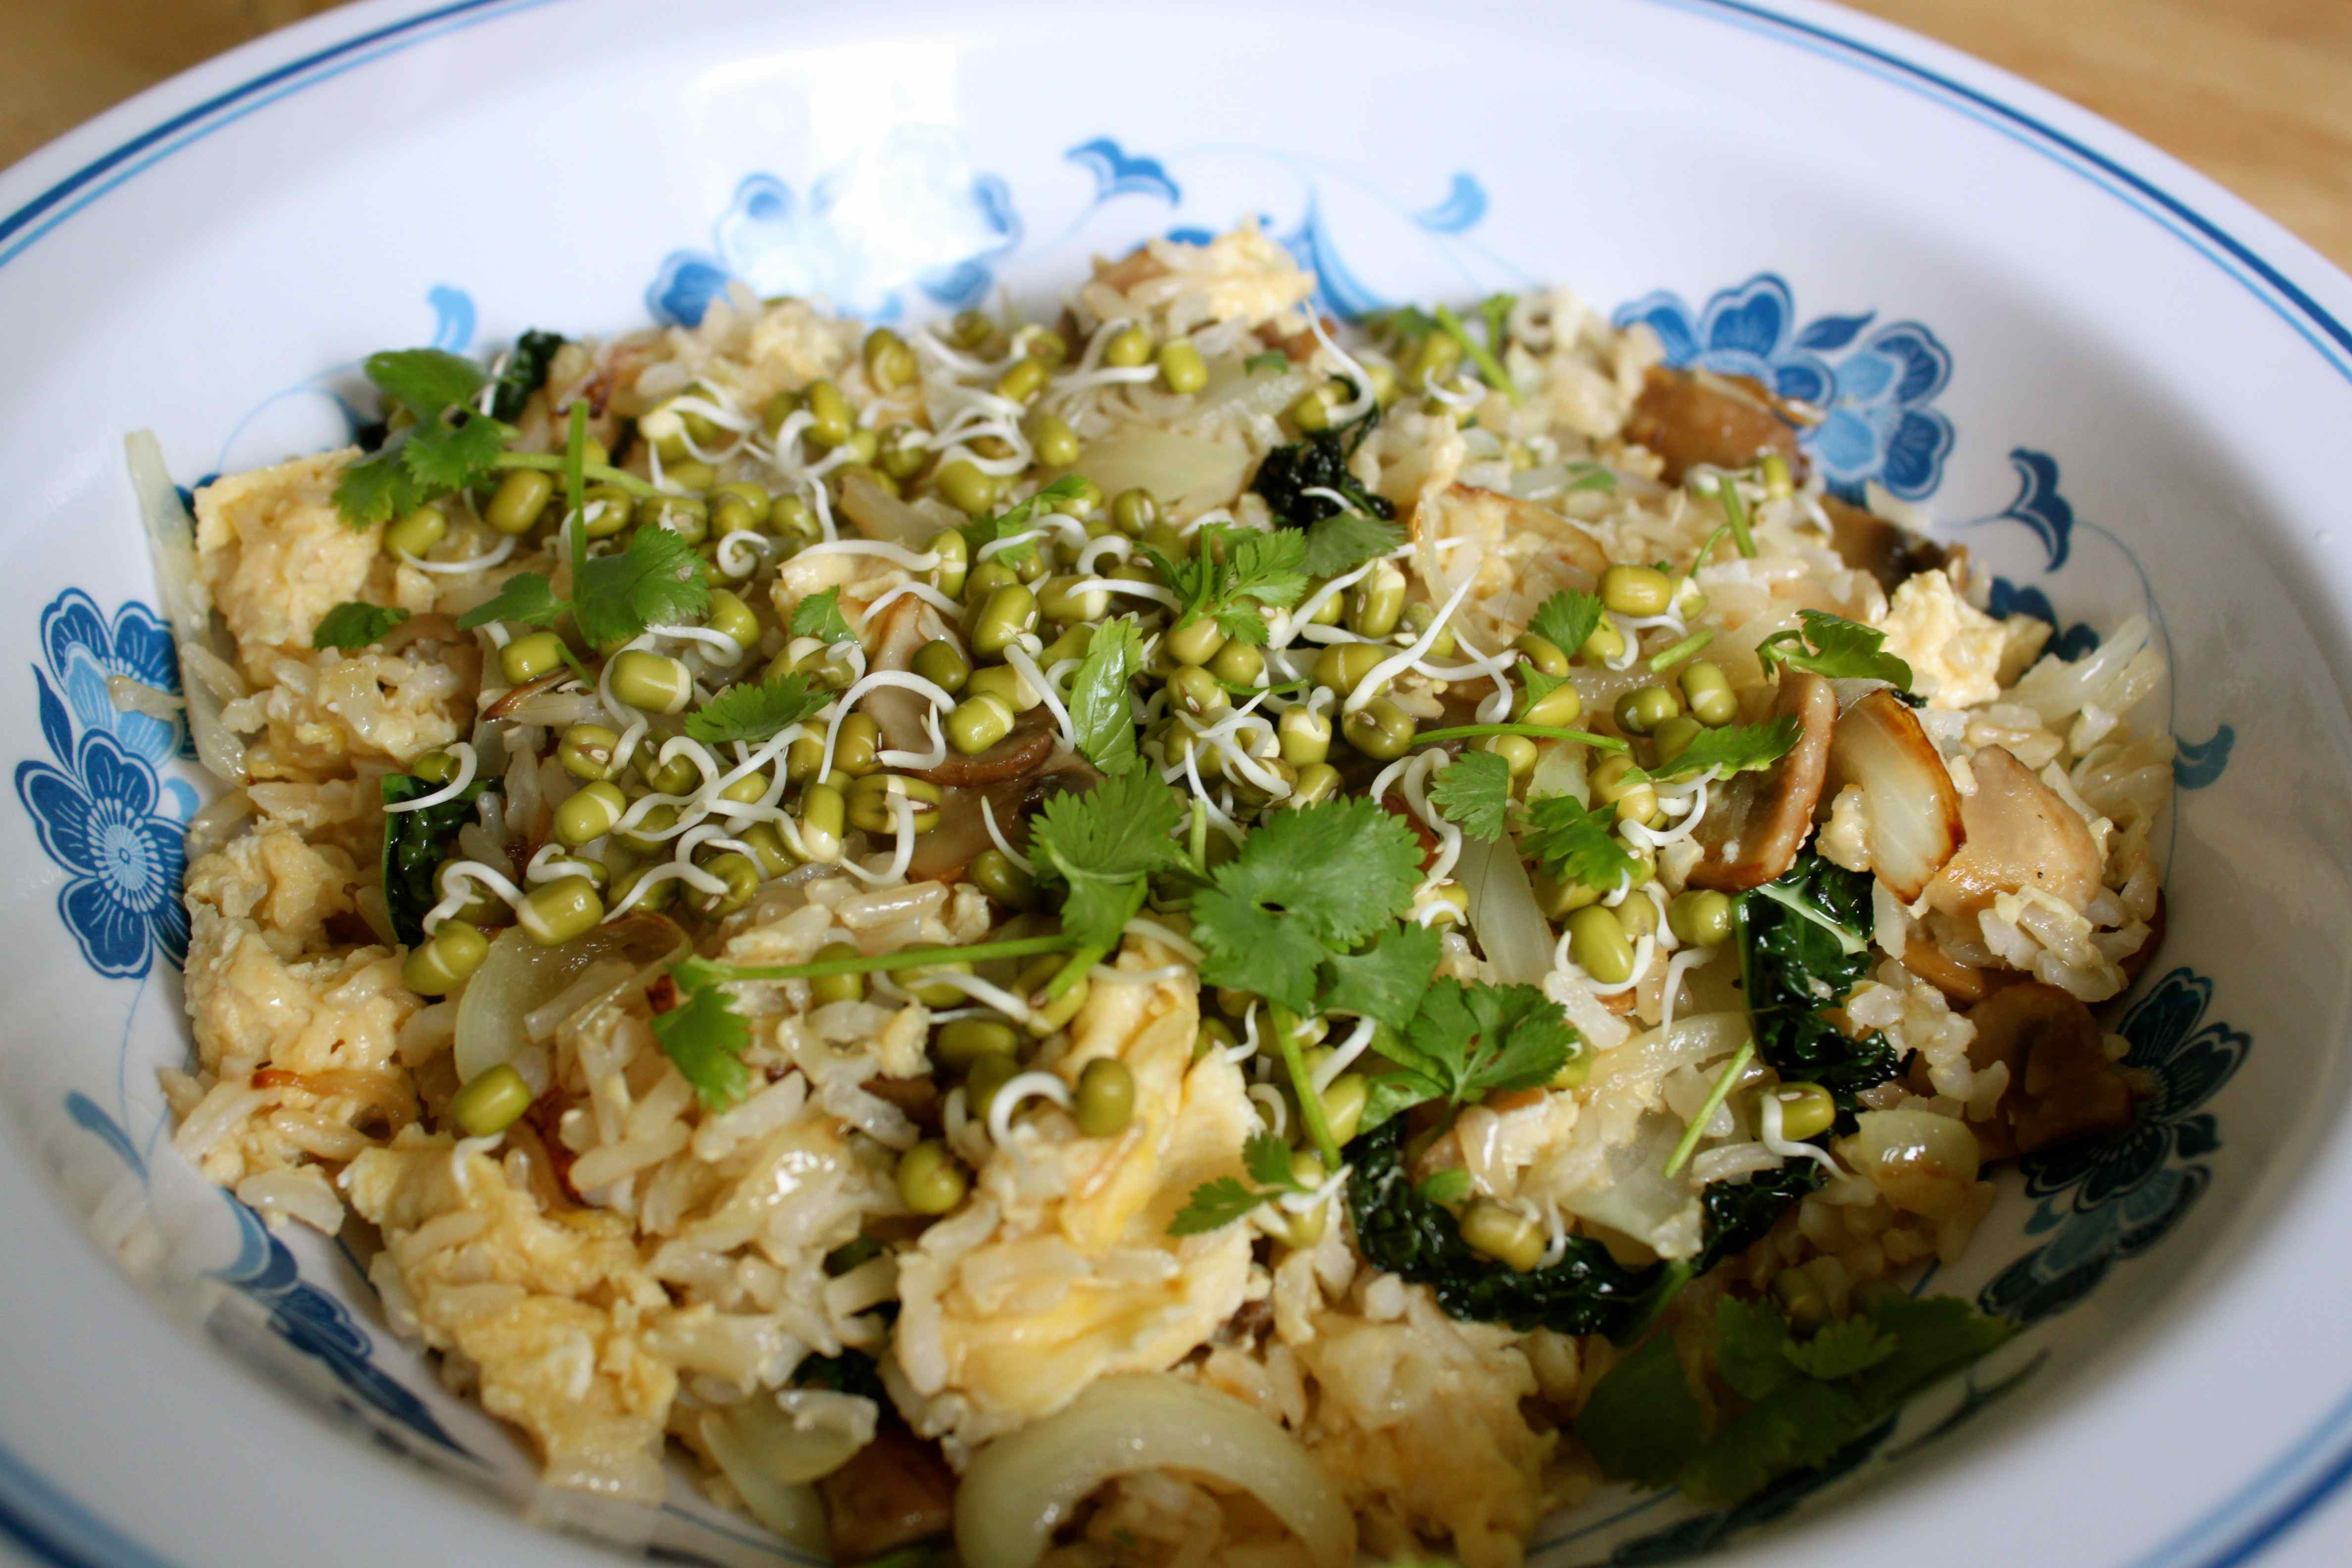 Bean Sprouts Fried Rice Egg Fried Rice And Sprouts